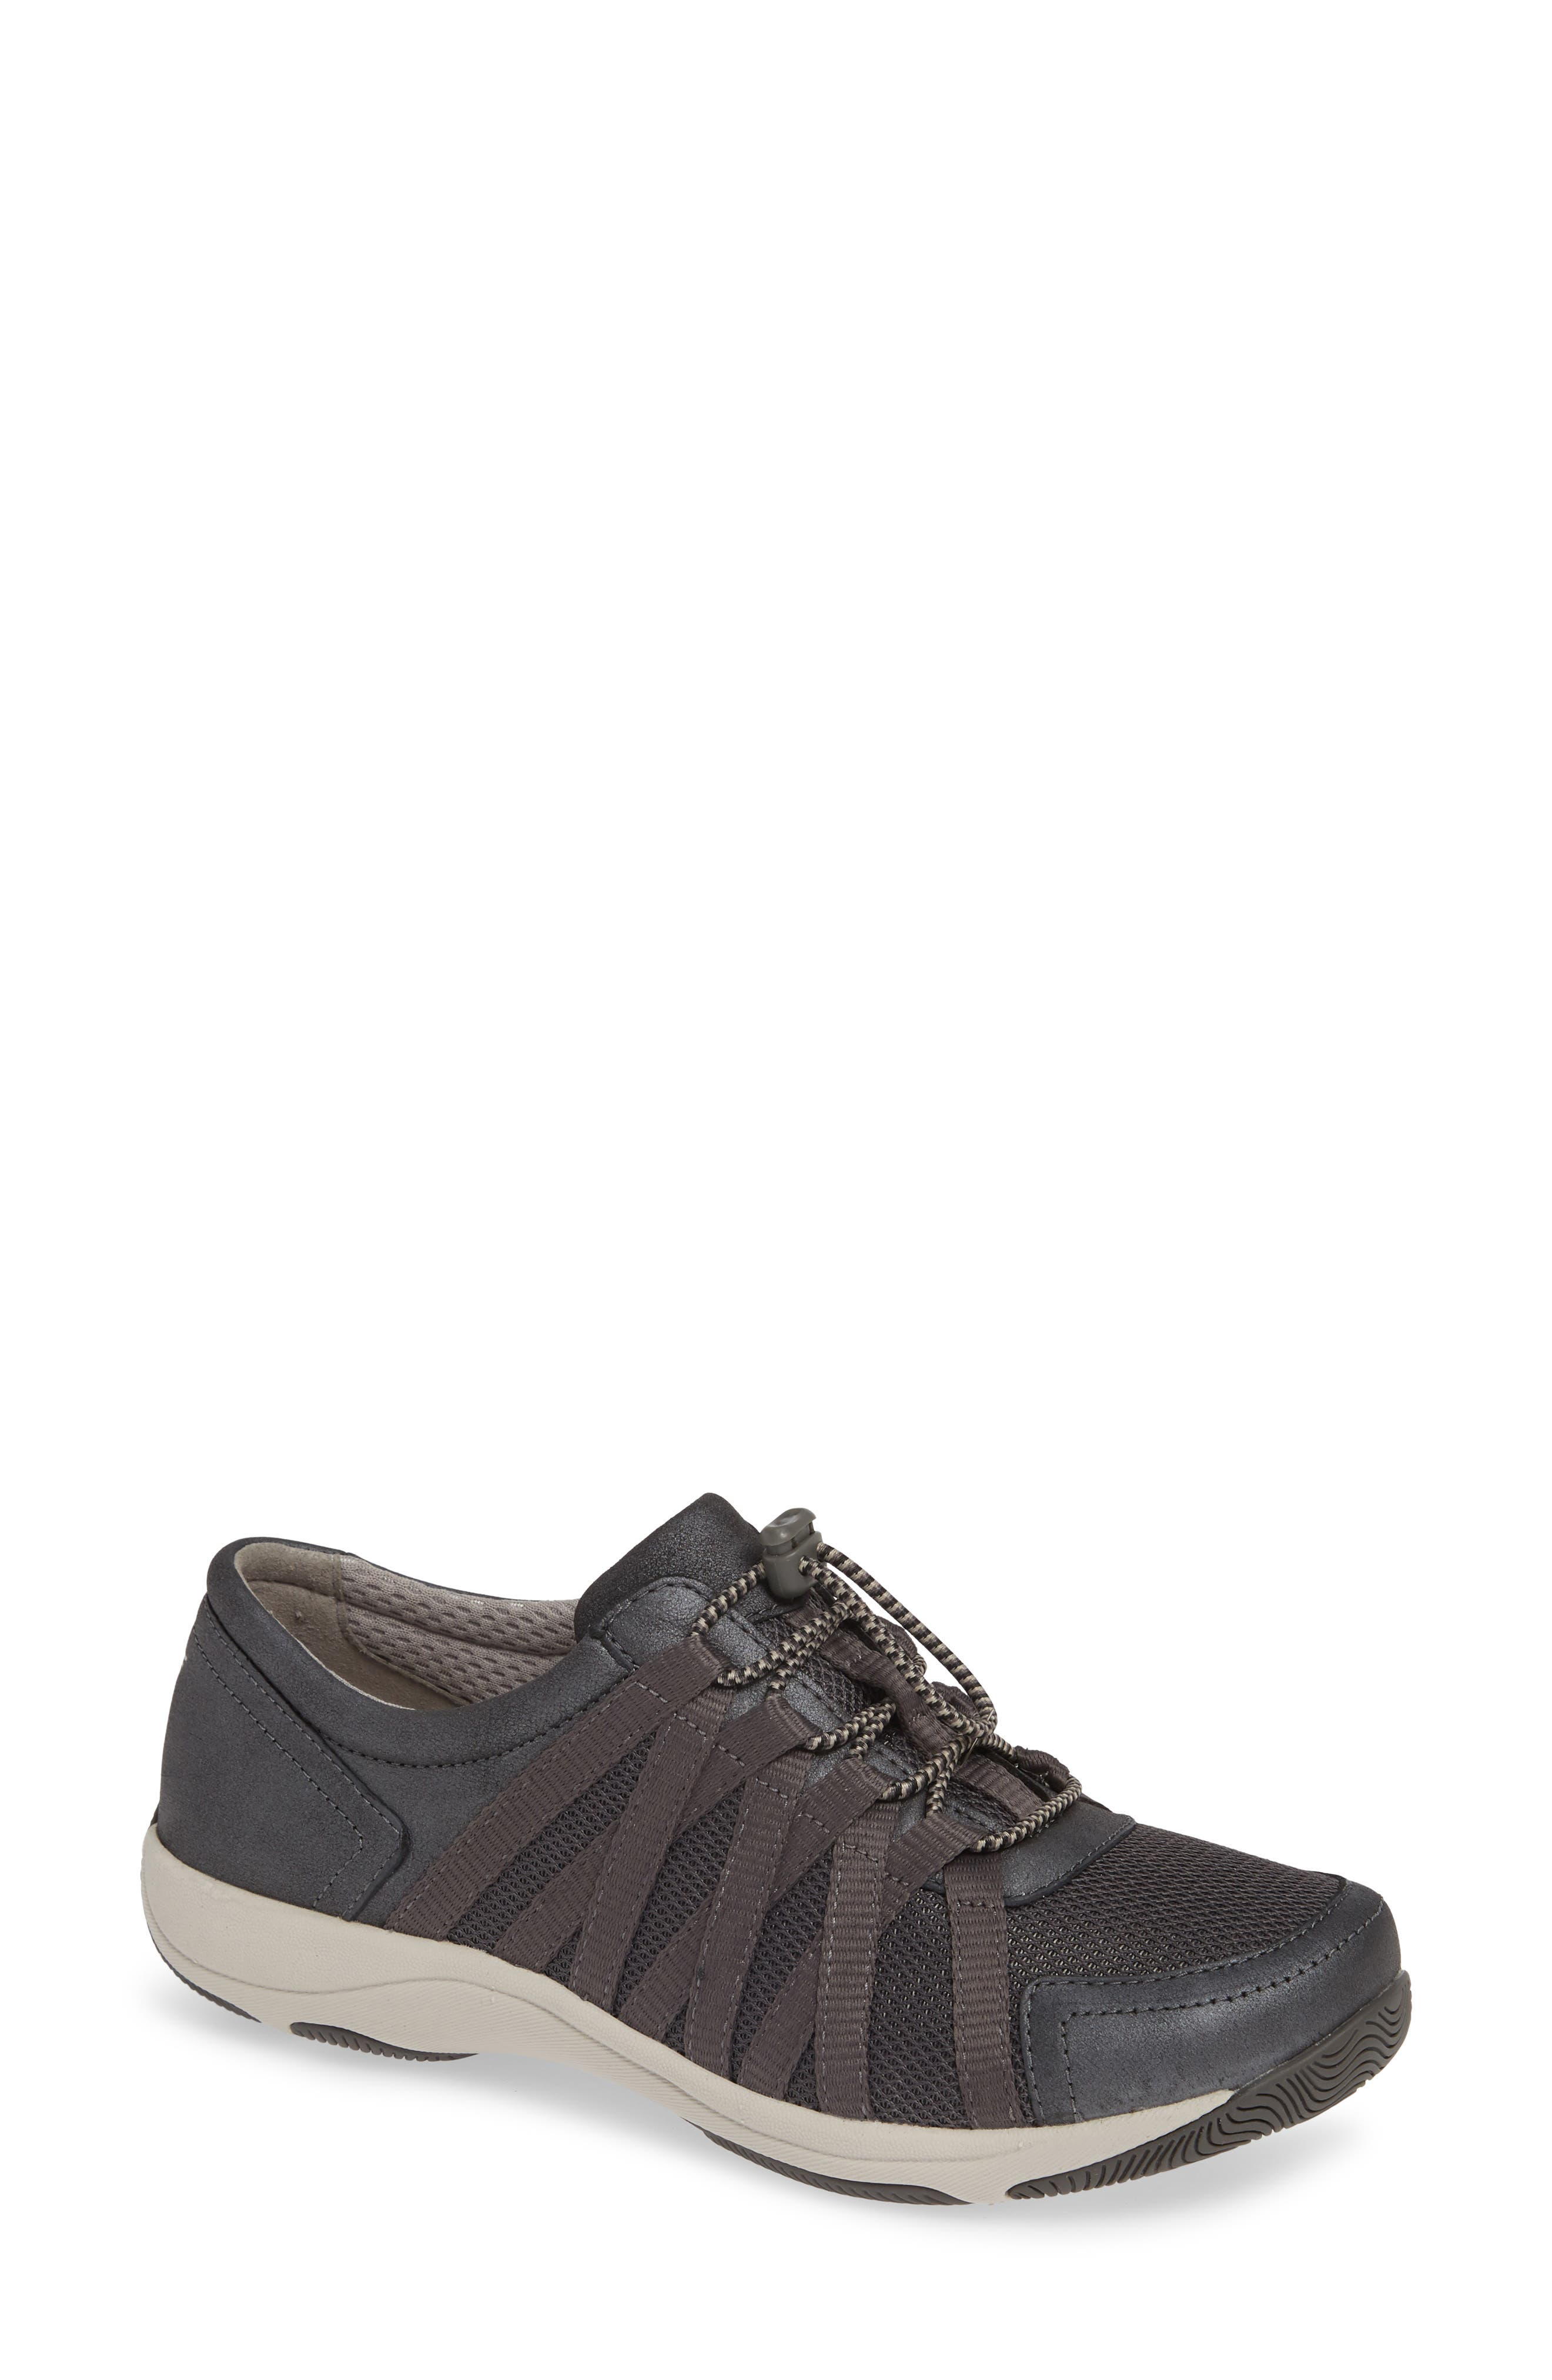 Halifax Collection Honor Sneaker,                         Main,                         color, 034